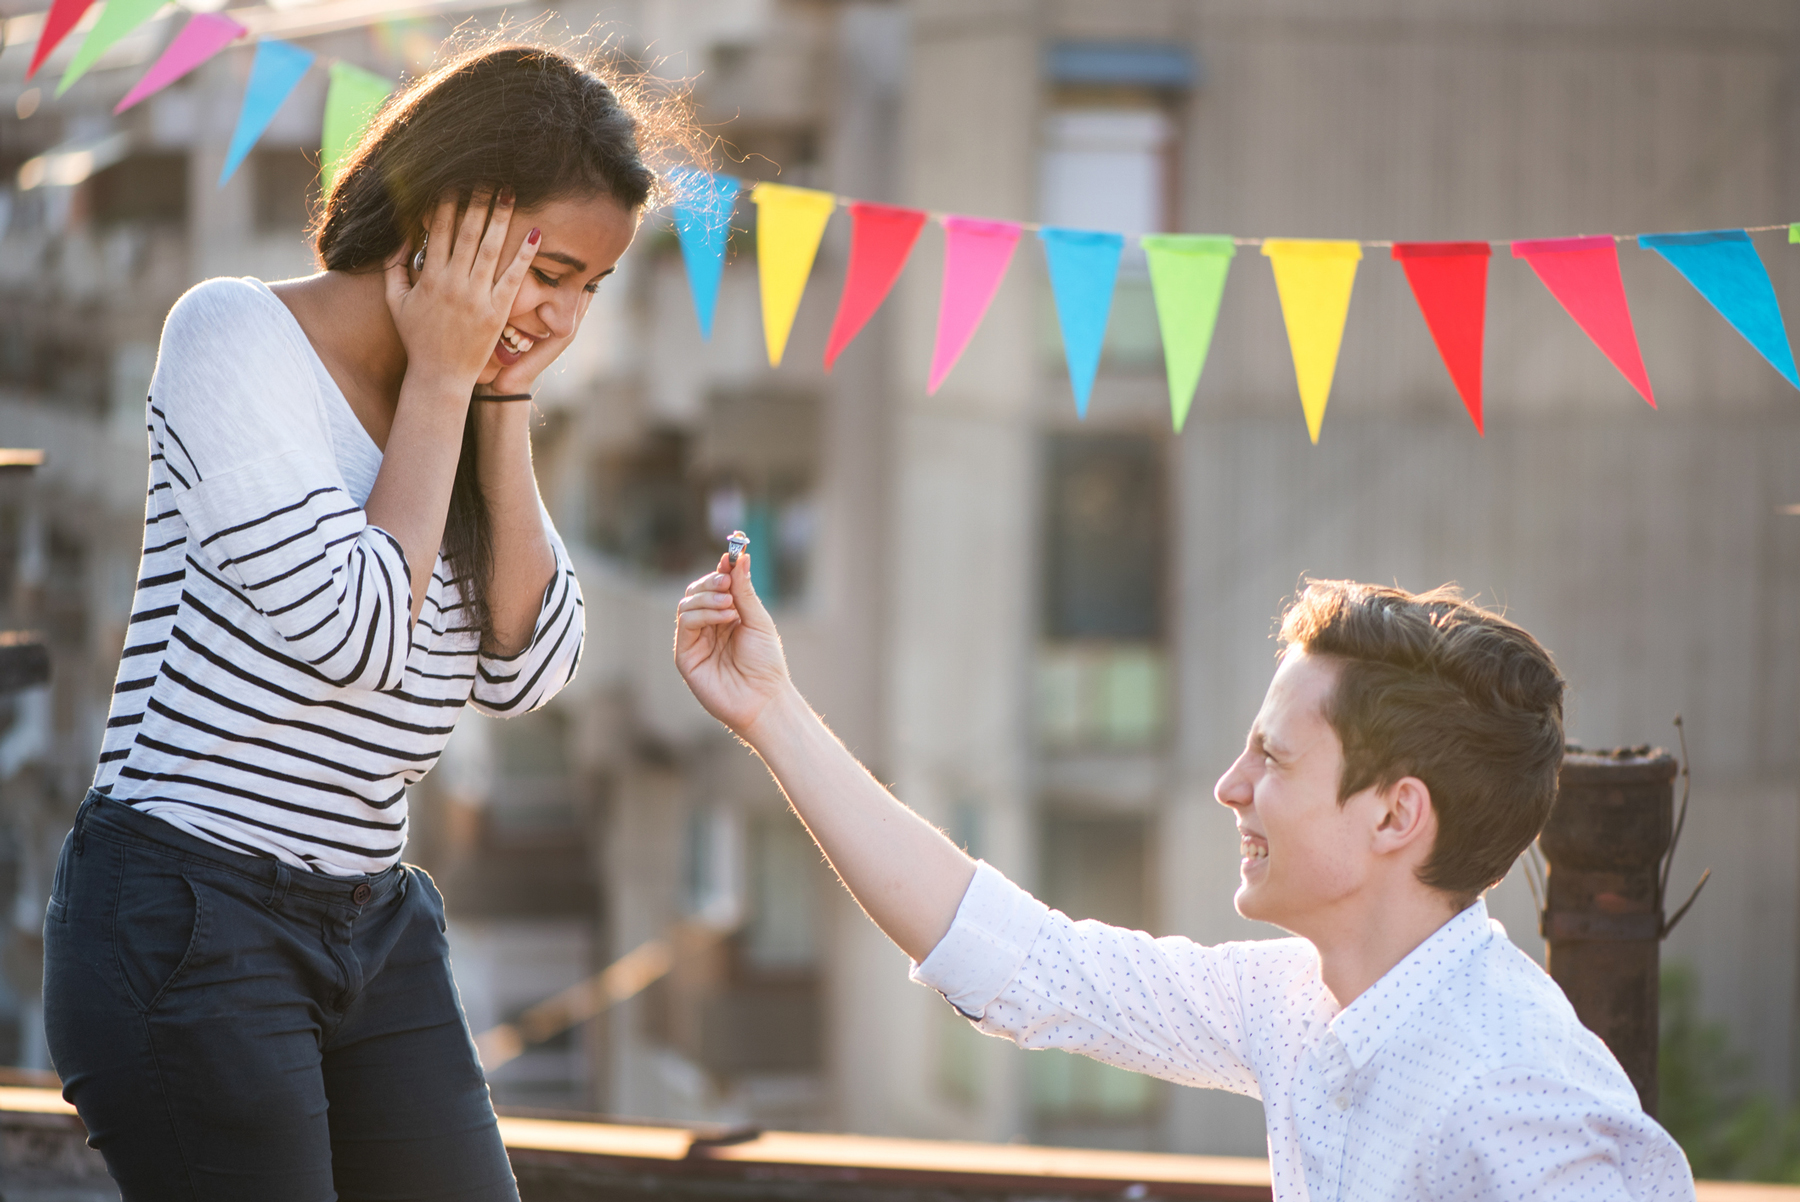 Engagement season ring trend predictions - man proposing to woman